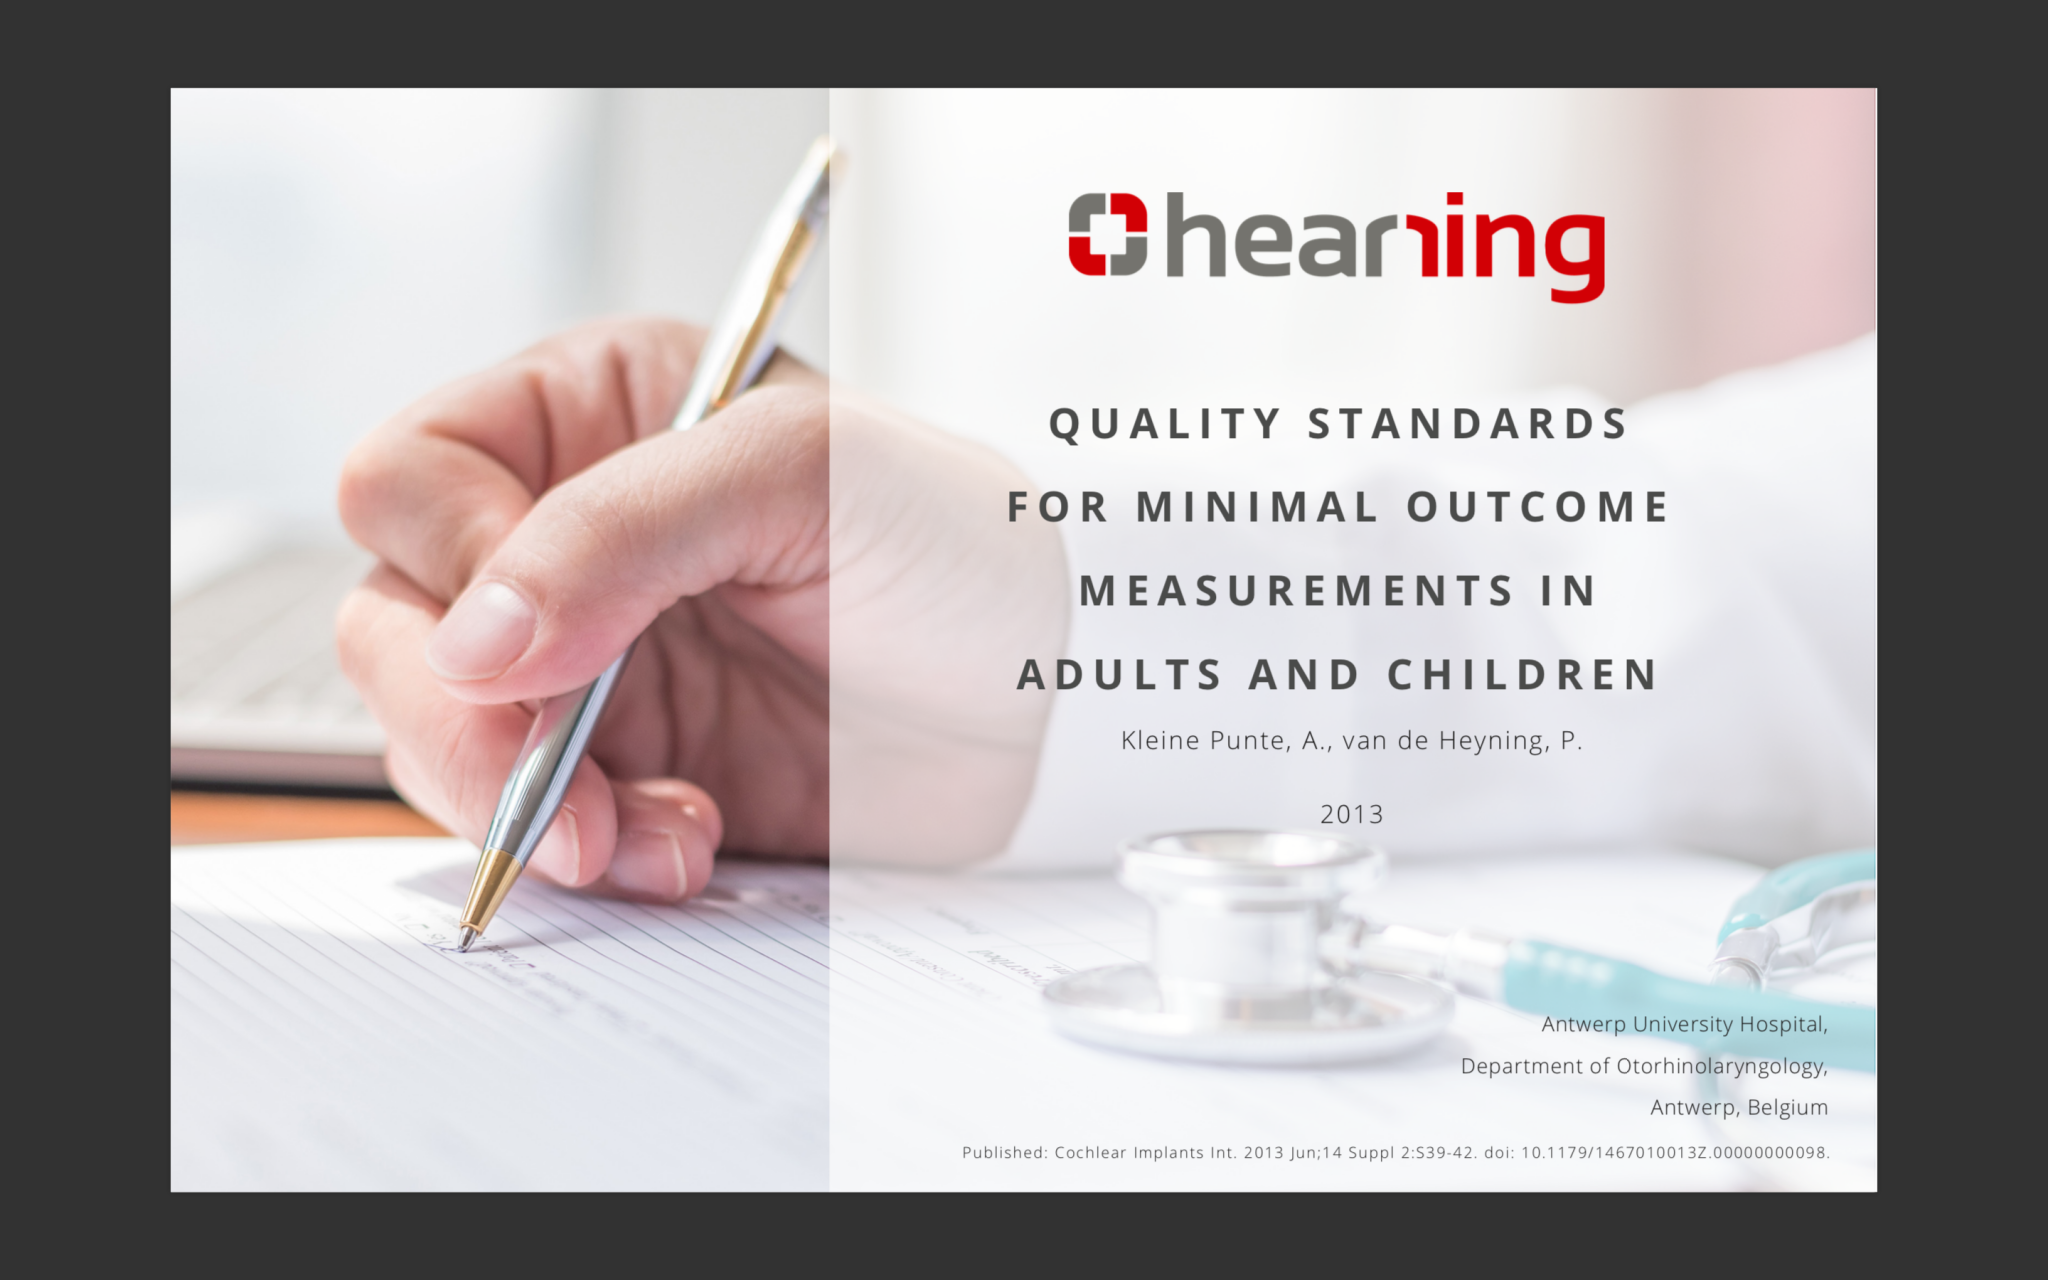 Minimal Outcome Measurements Quality Standards Hearring